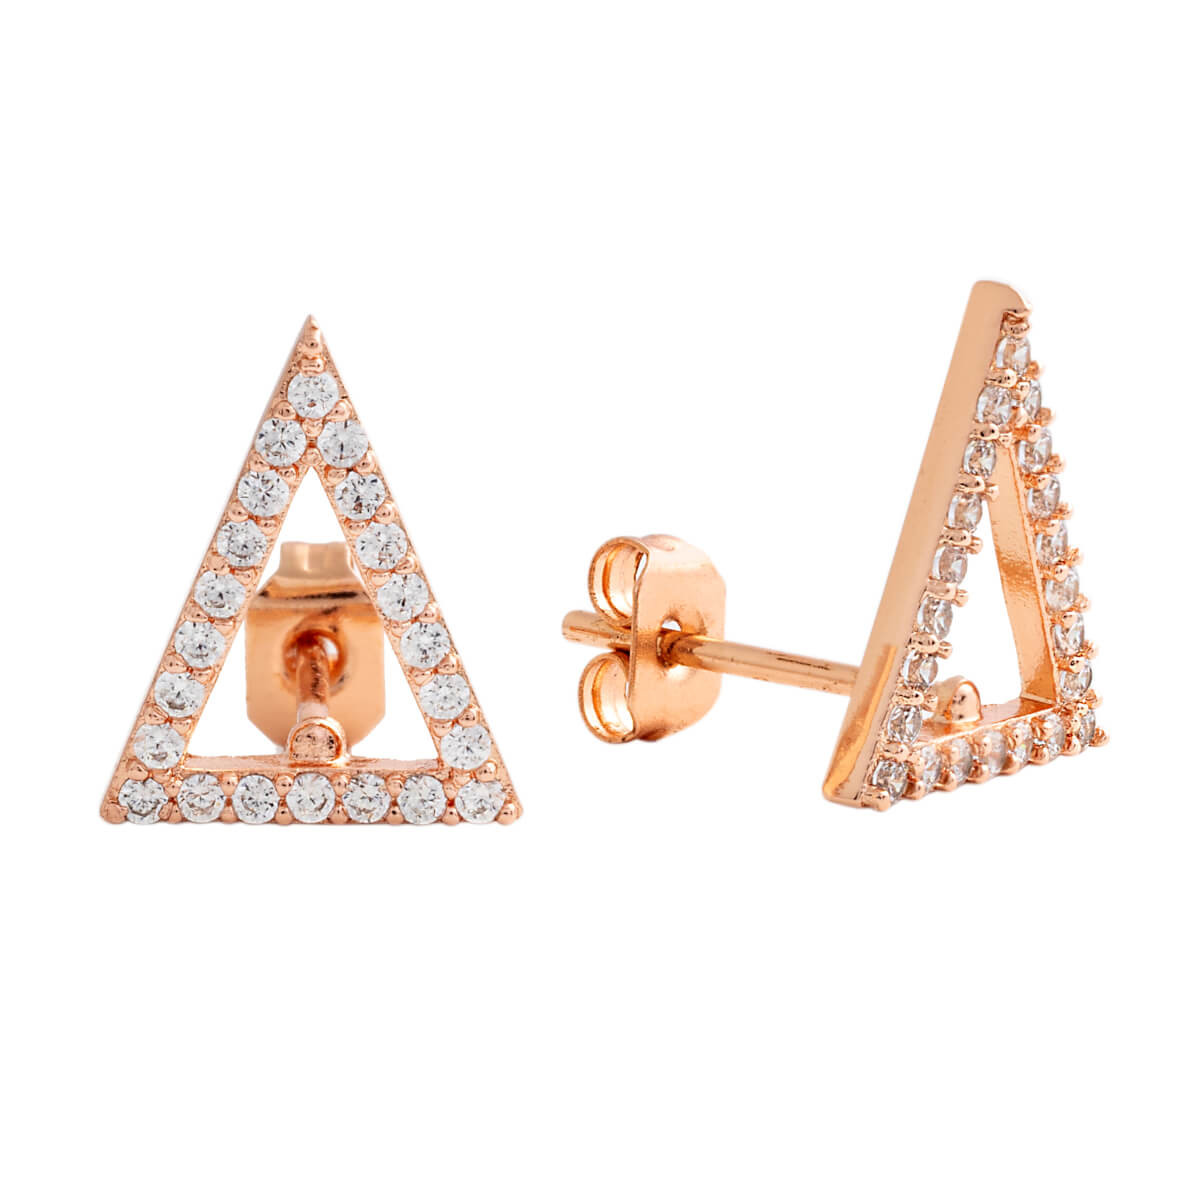 27c39194509 Sole Du Soleil Lupine 18k Rose Gold Plated Open Triangle Stud Earrings  SDS20161EO